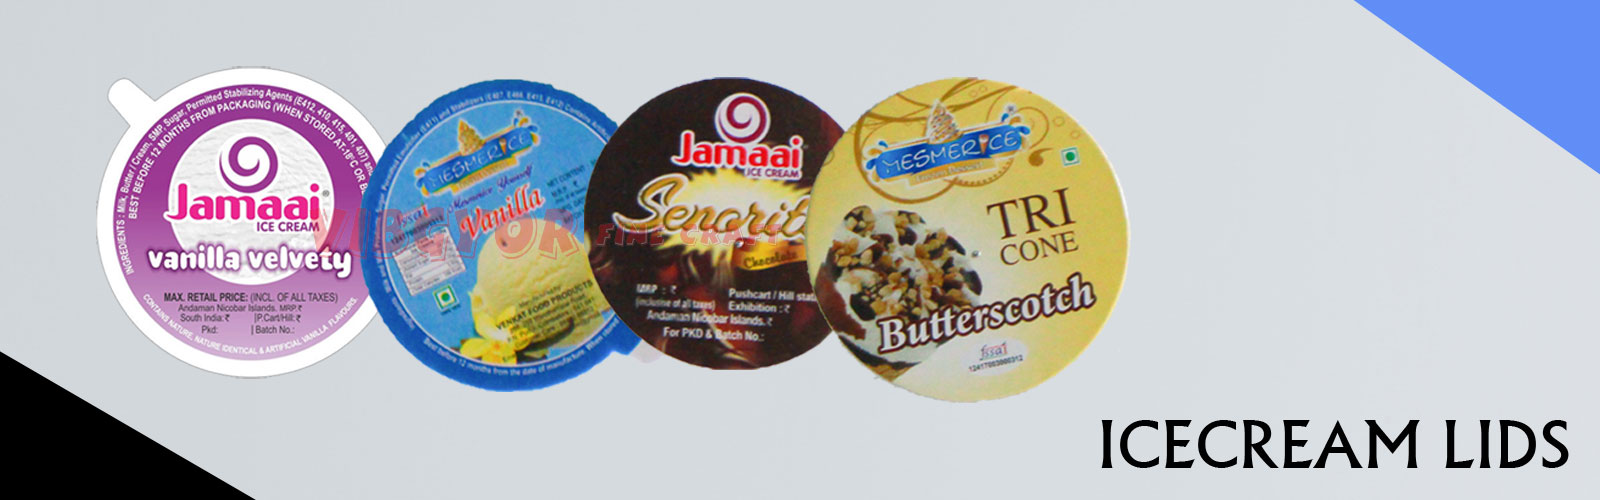 Ice Cream Lids